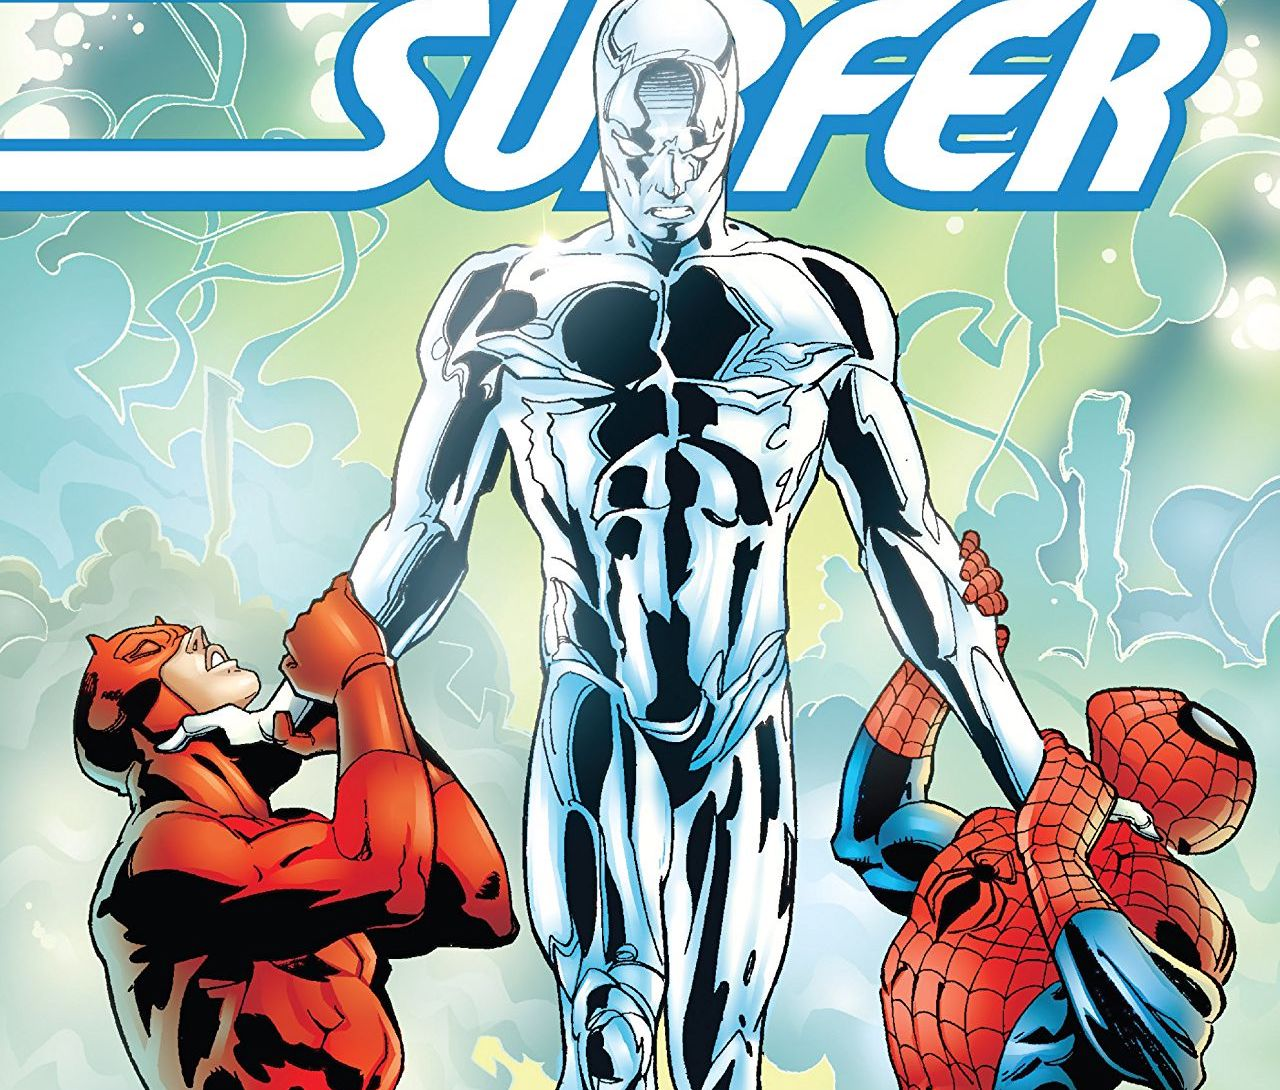 Some of the best Silver Surfer stories ever written.